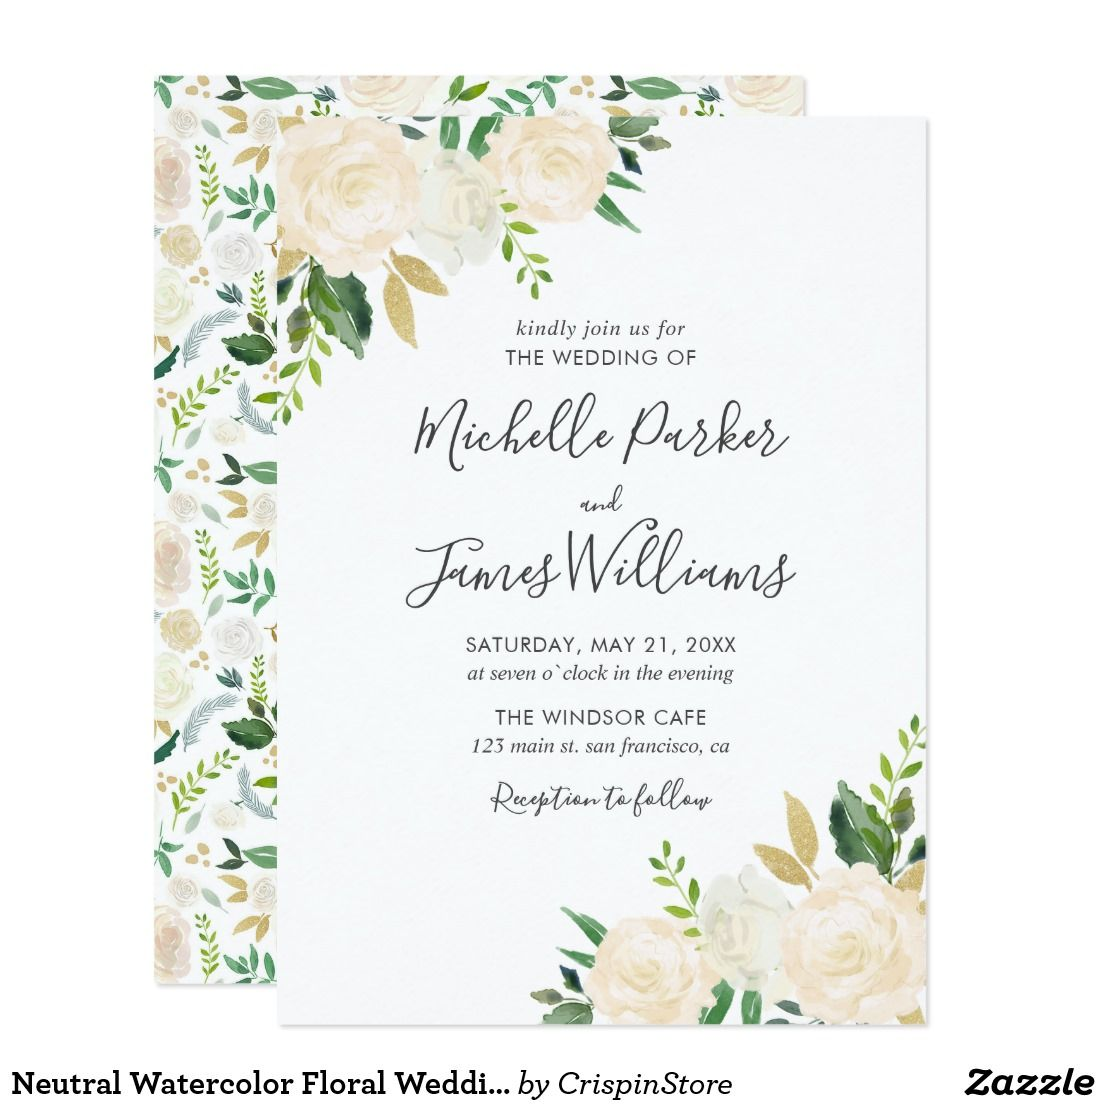 White Neutral Watercolor Floral Wedding Invitation | weddings ...